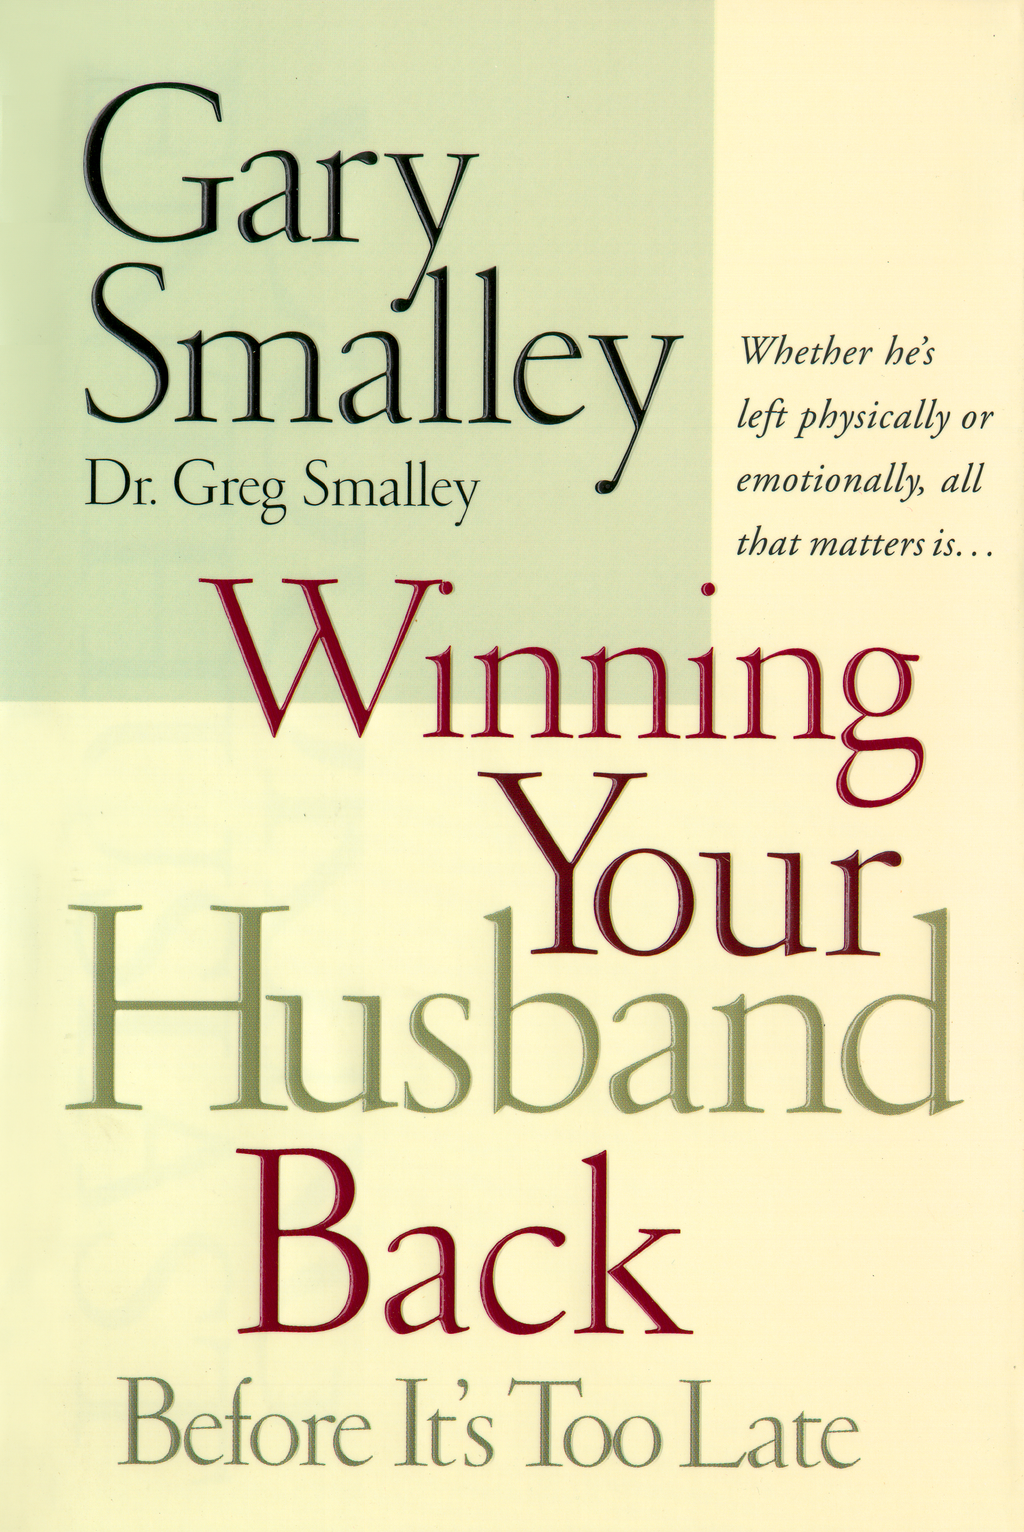 Winning Your Husband Back Before It's Too Late By: Gary Smalley